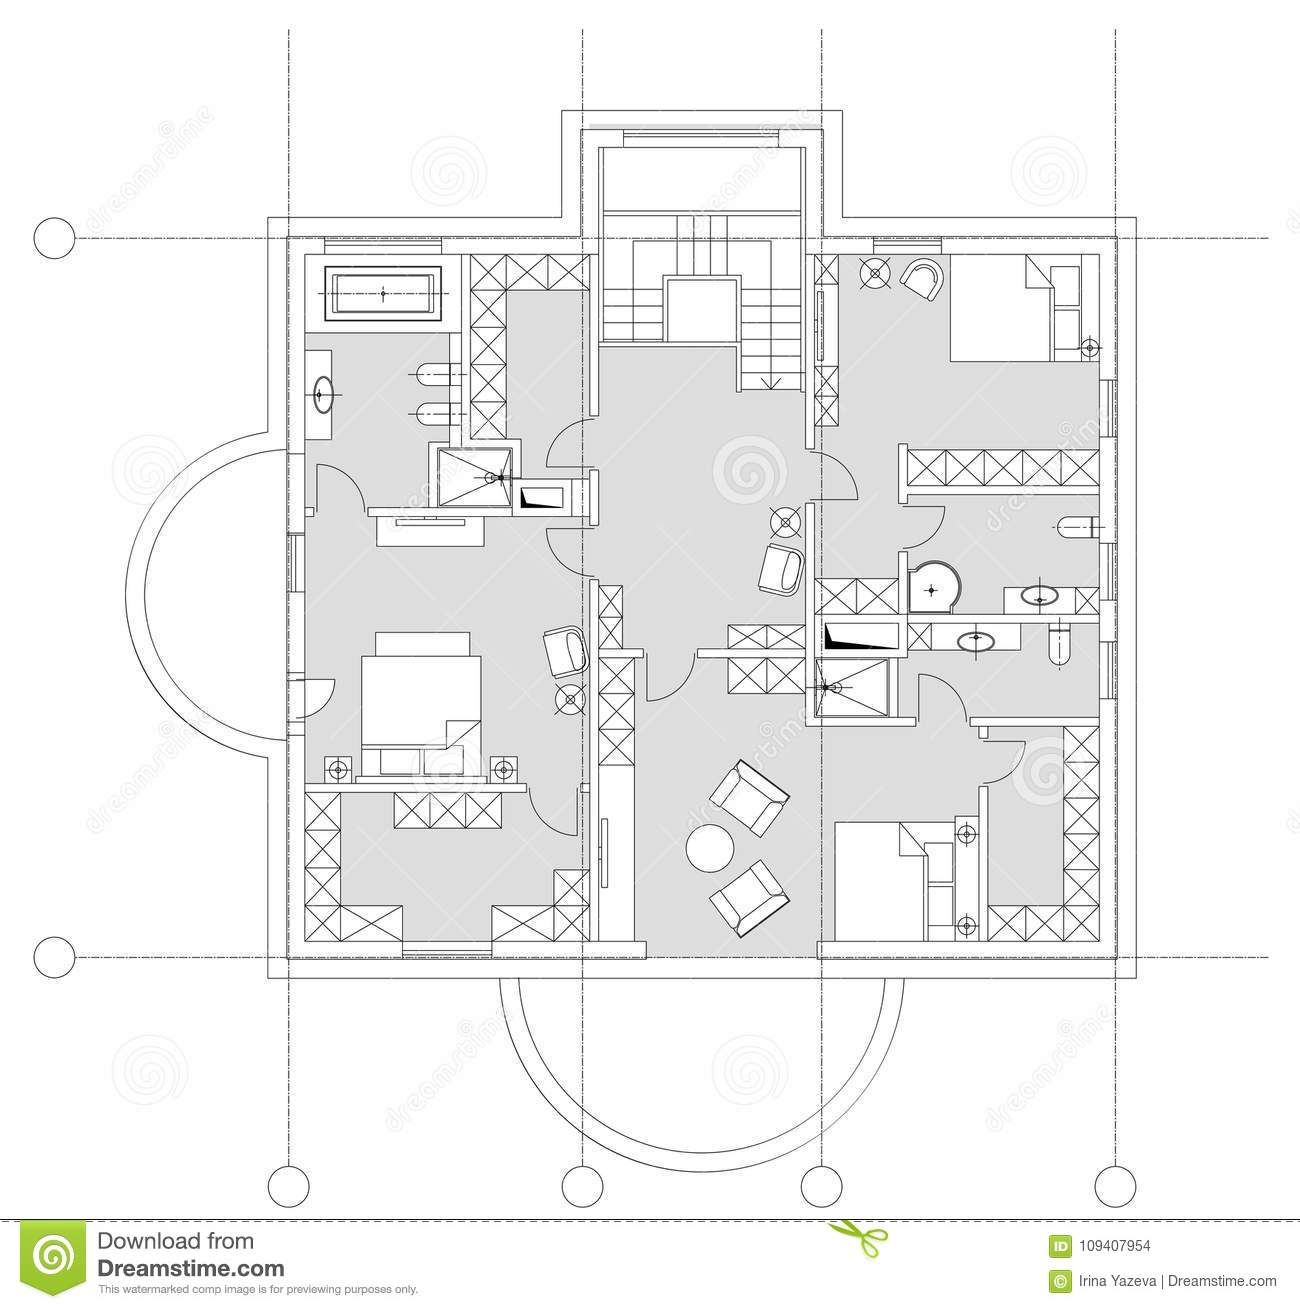 floor plan furniture symbols bedroom. Standard Home Furniture Symbols Set Used In Architecture Plans, Planning Icon Set, Graphic Design Elements. Small Privat House - Top View Plans. Floor Plan Bedroom B